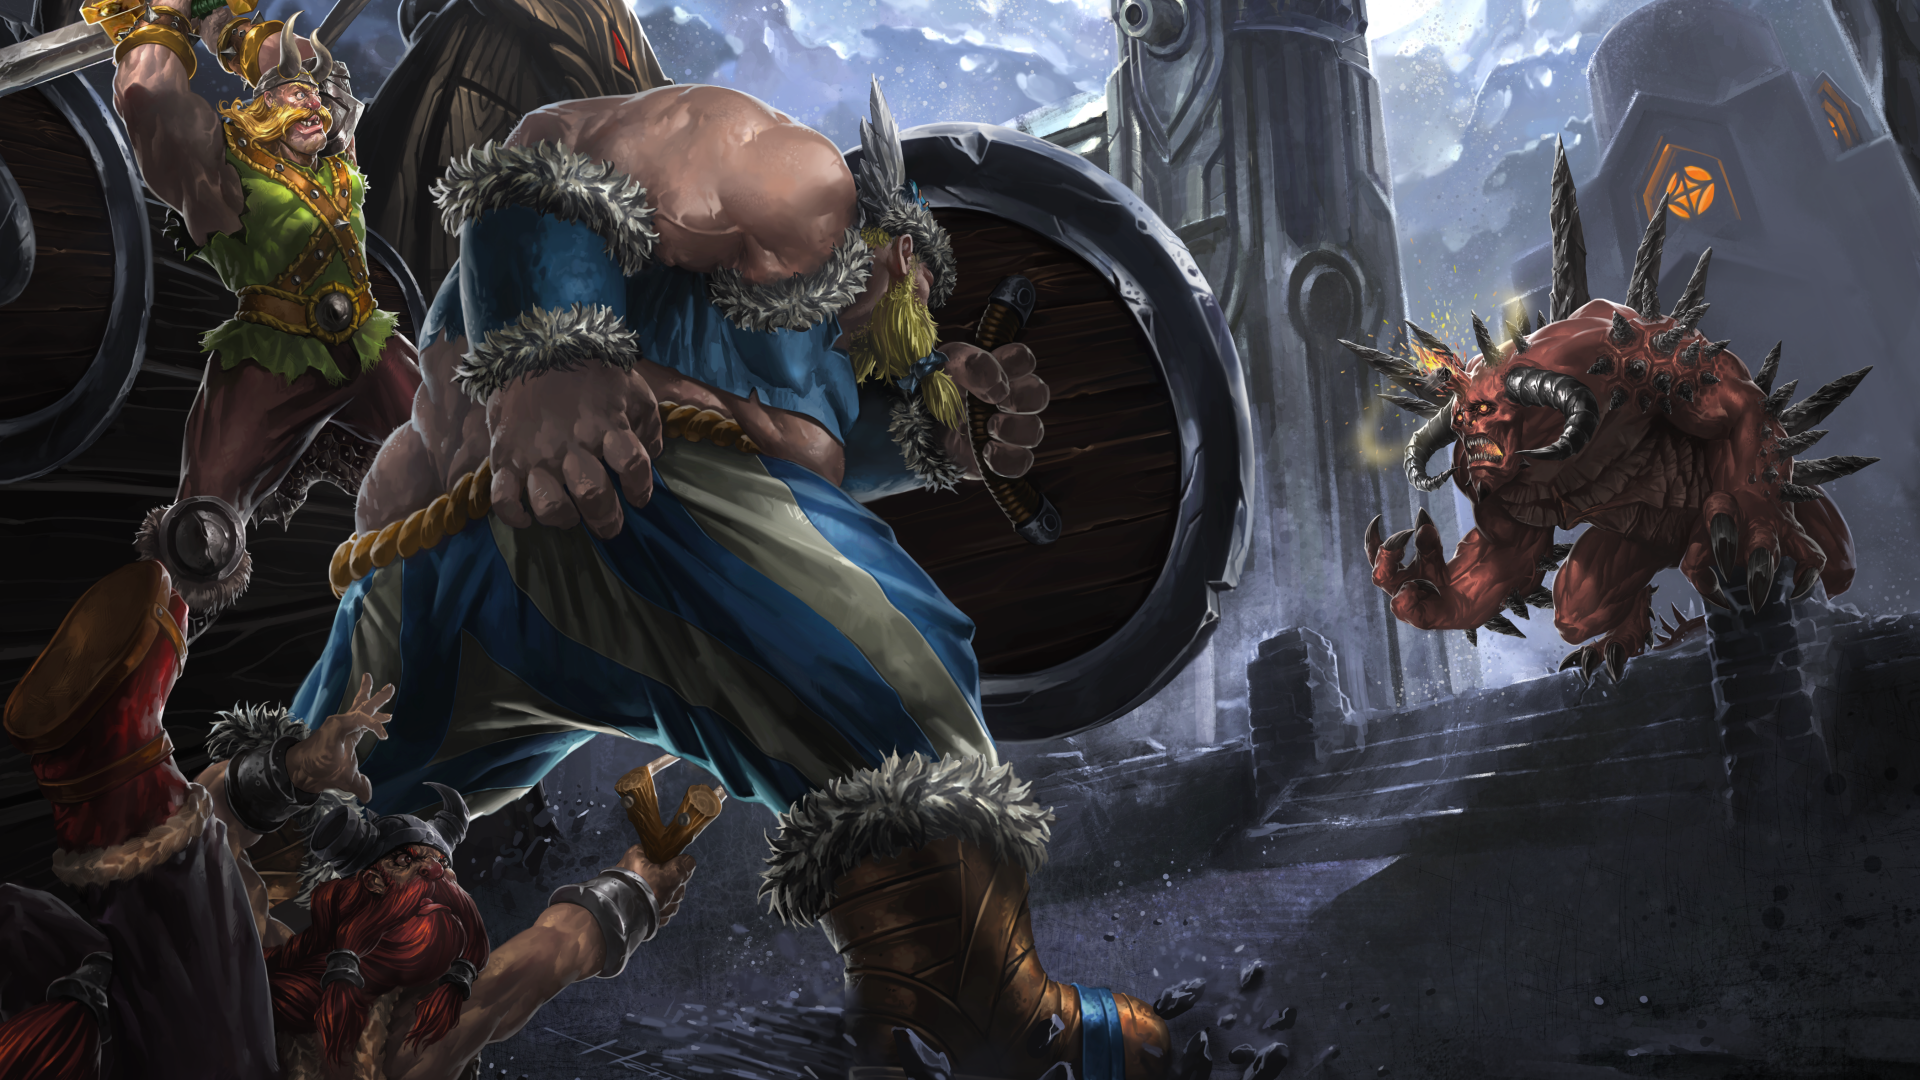 Heroes Of The Storm 1279598 Hd Wallpaper Backgrounds Download